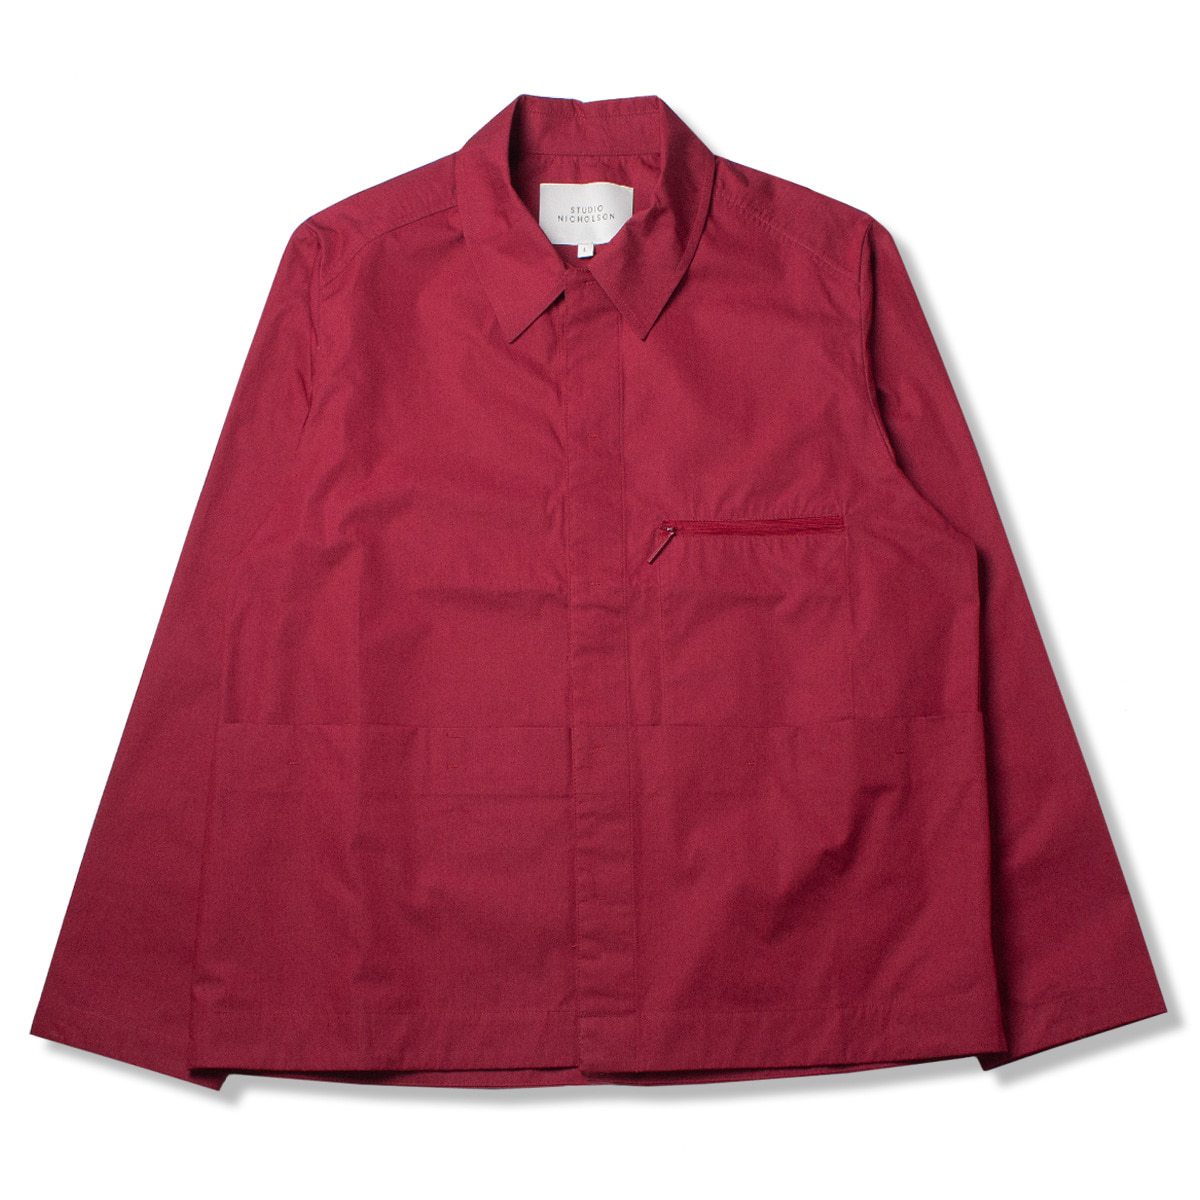 [STUDIO NICHOLSON] KANGAROO POCKET OVERSHIRT 'RUBY'